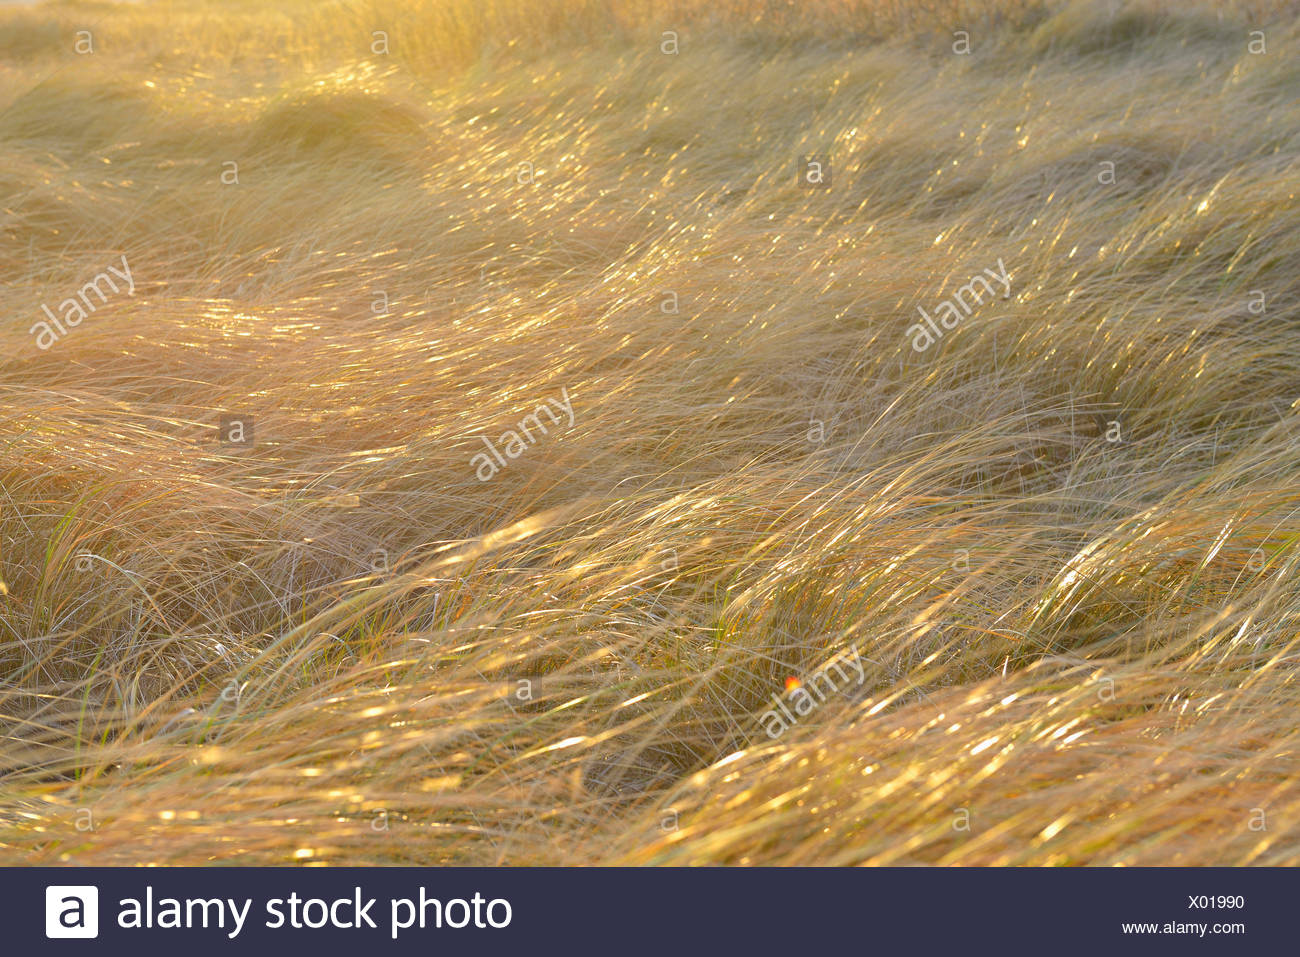 dune grass in the wind, Germany, Schleswig-Holstein, Heligoland - Stock Image